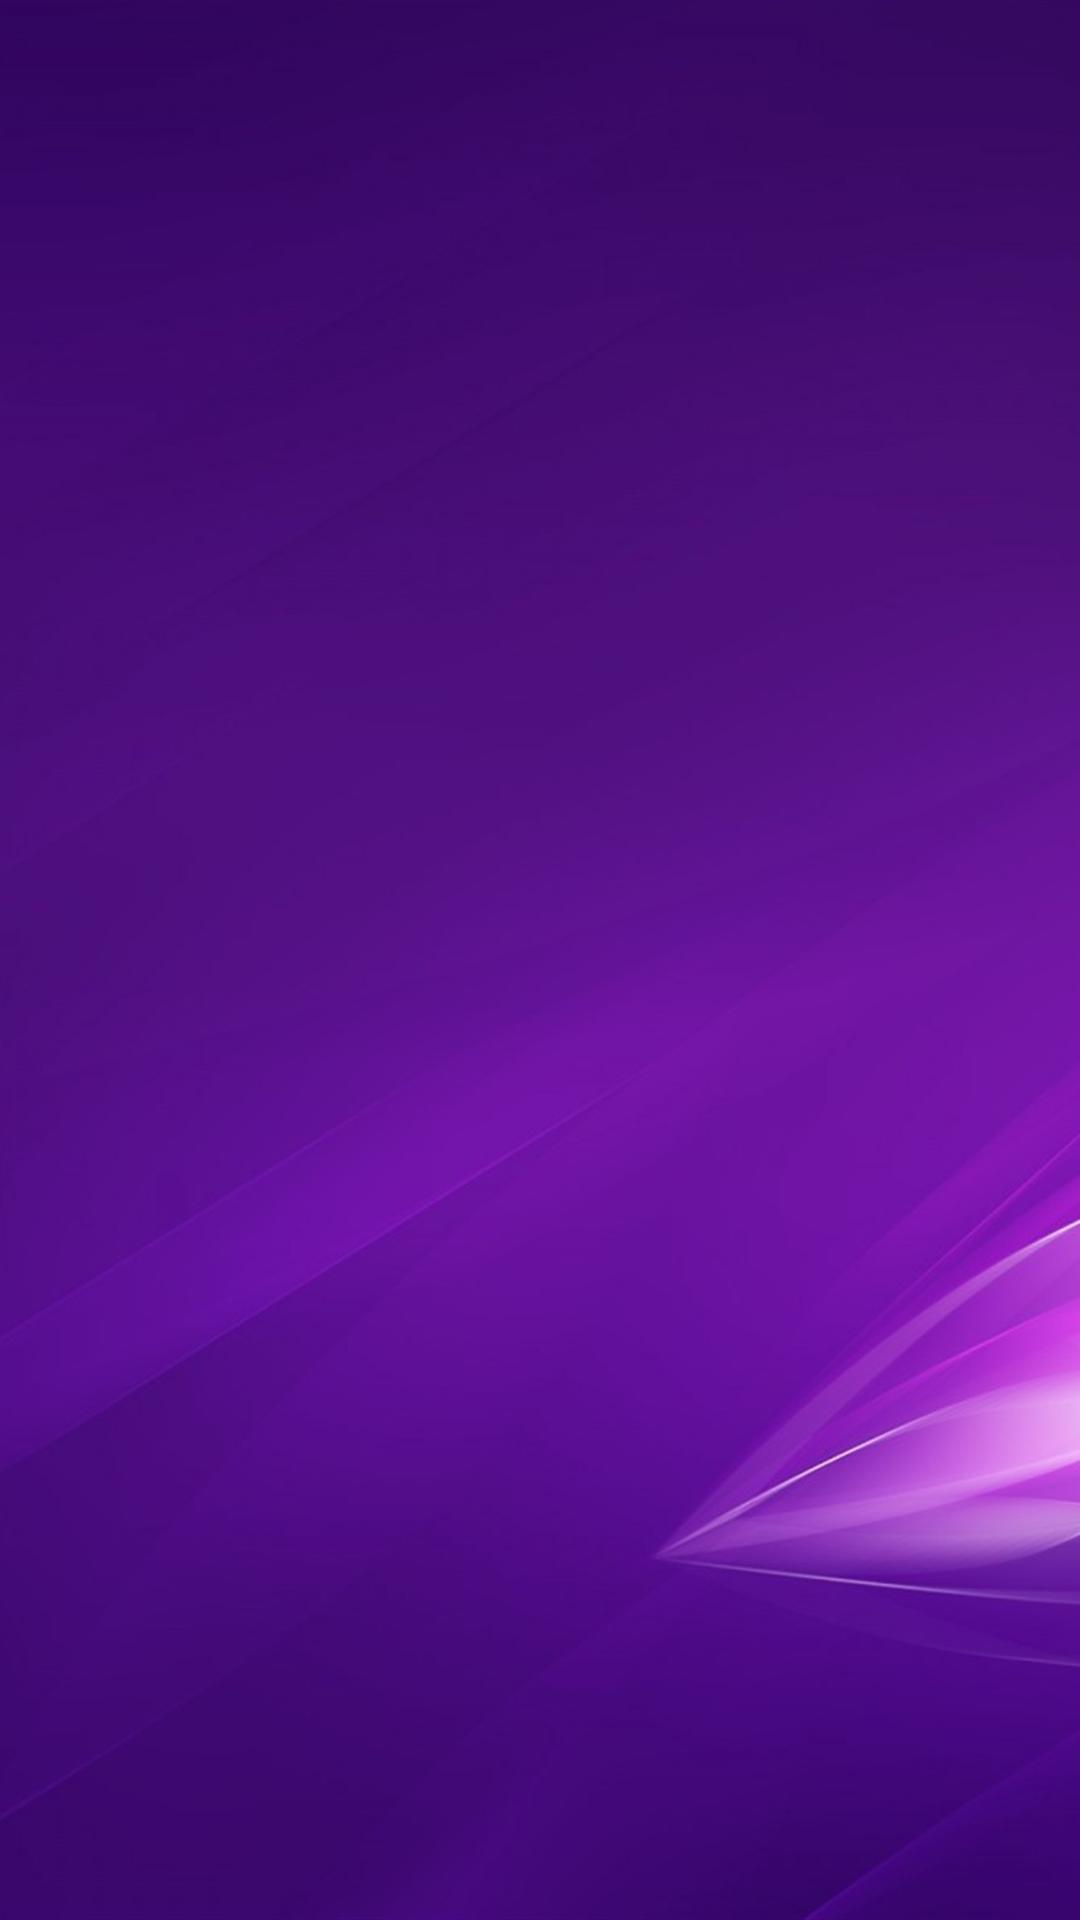 Free Download Purple Wallpaper For Iphone Hd 1080x1920 For